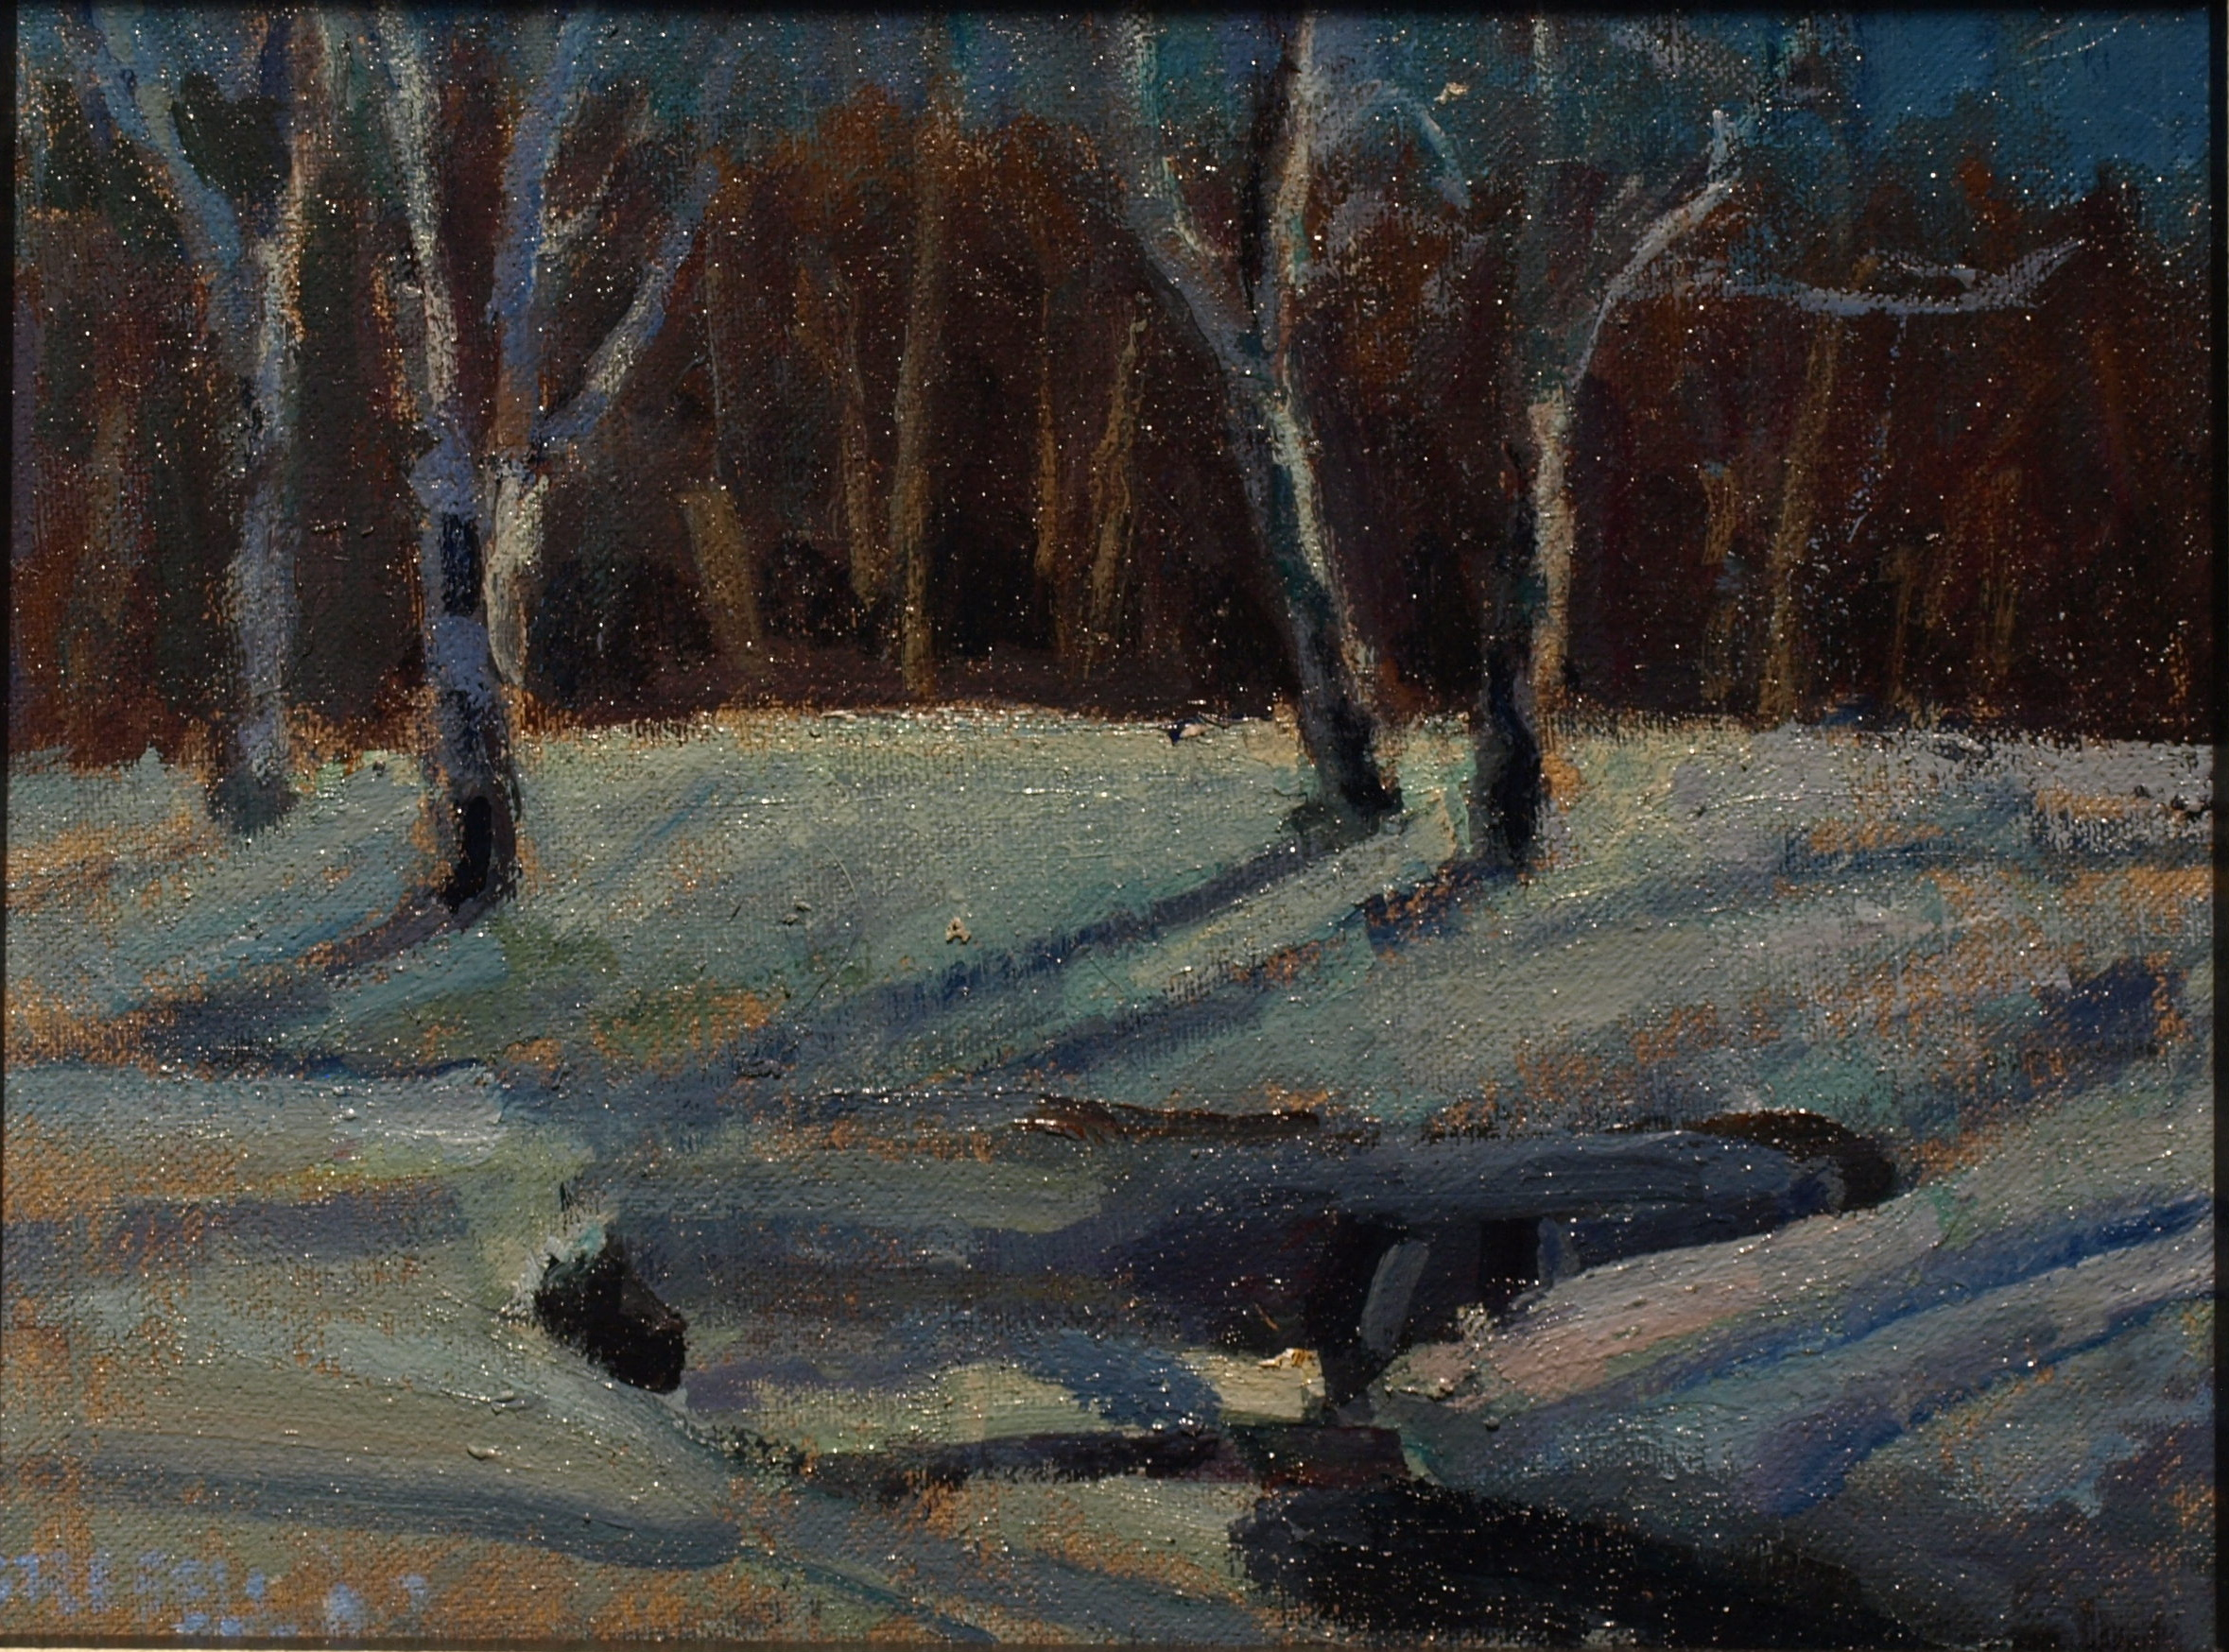 Moonlit Birches, Oil on Canvas on Panel, 8 x 10 Inches, by Susan Grisell, $200